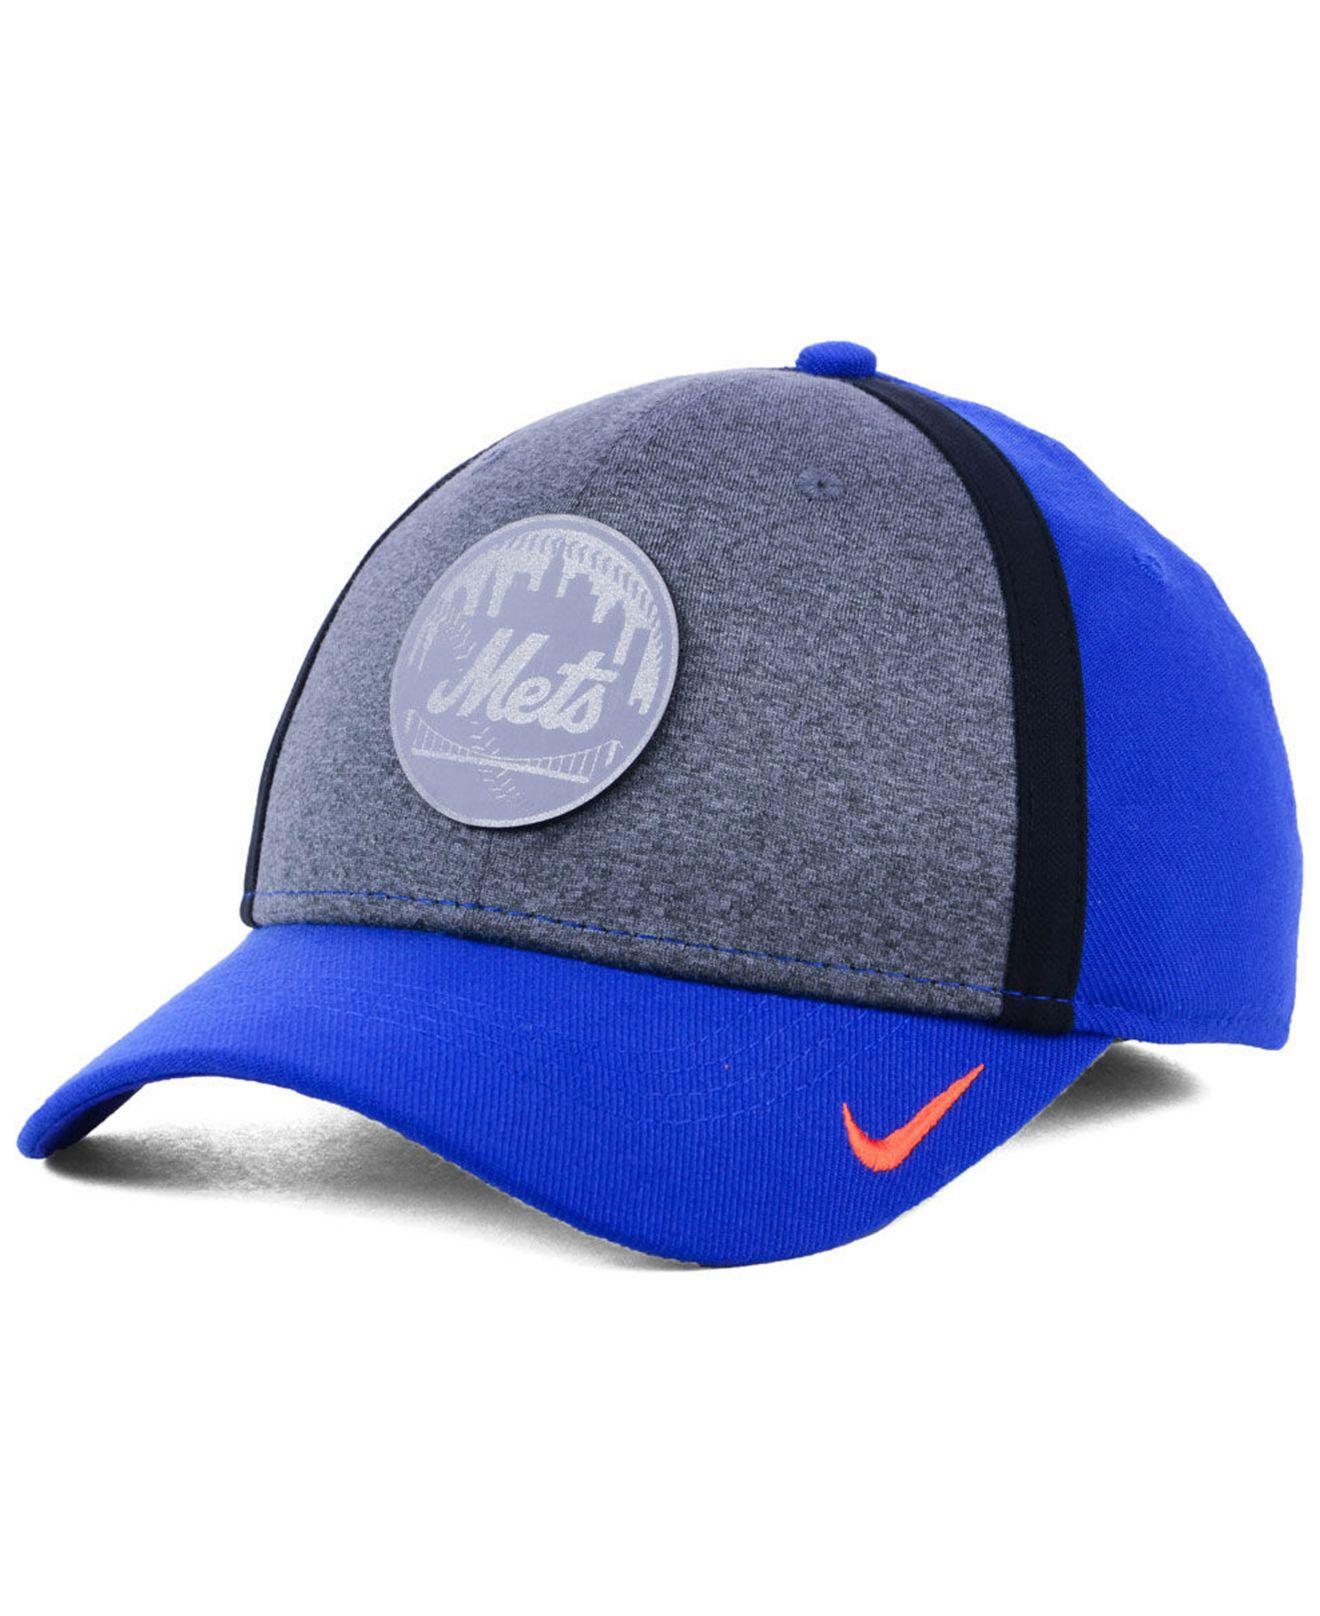 new style 560d2 ddd2b Nike. Men s Blue New York Mets Team Color Reflective Swooshflex Cap